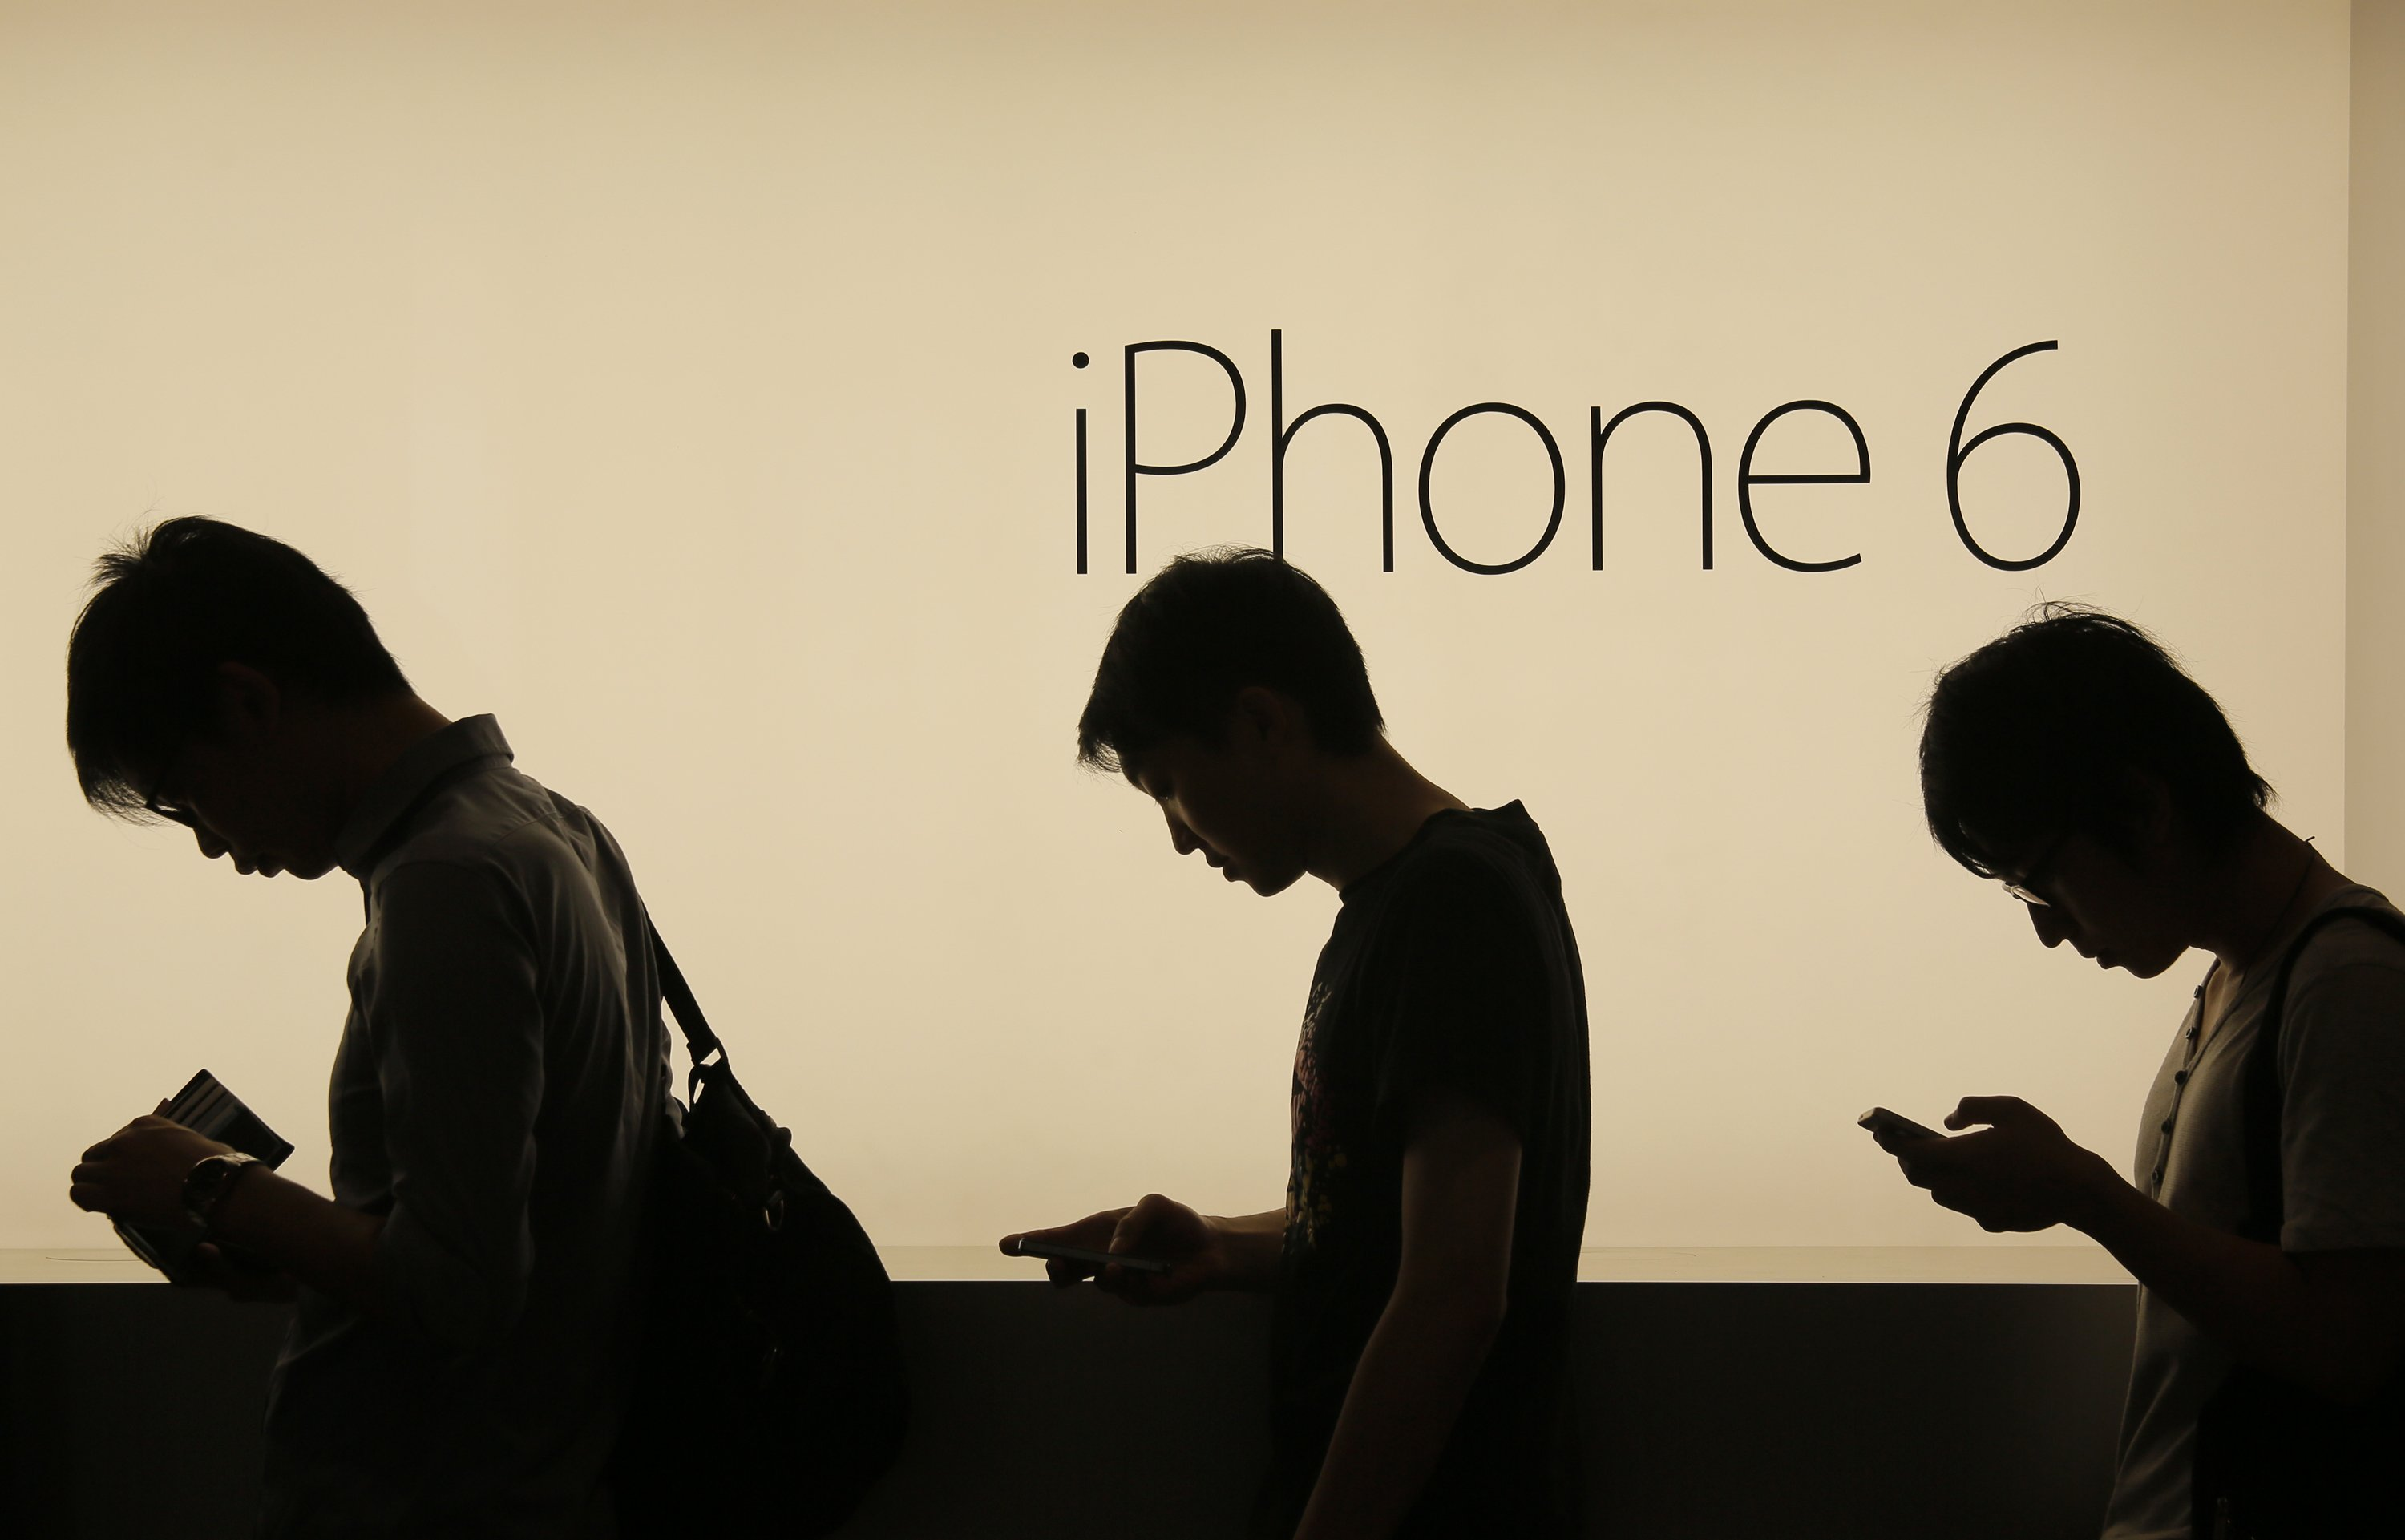 People wait to buy the new Apple iPhone 6 and 6 Plus devices outside an Apple store in Hong Kong on Sept. 19, 2014